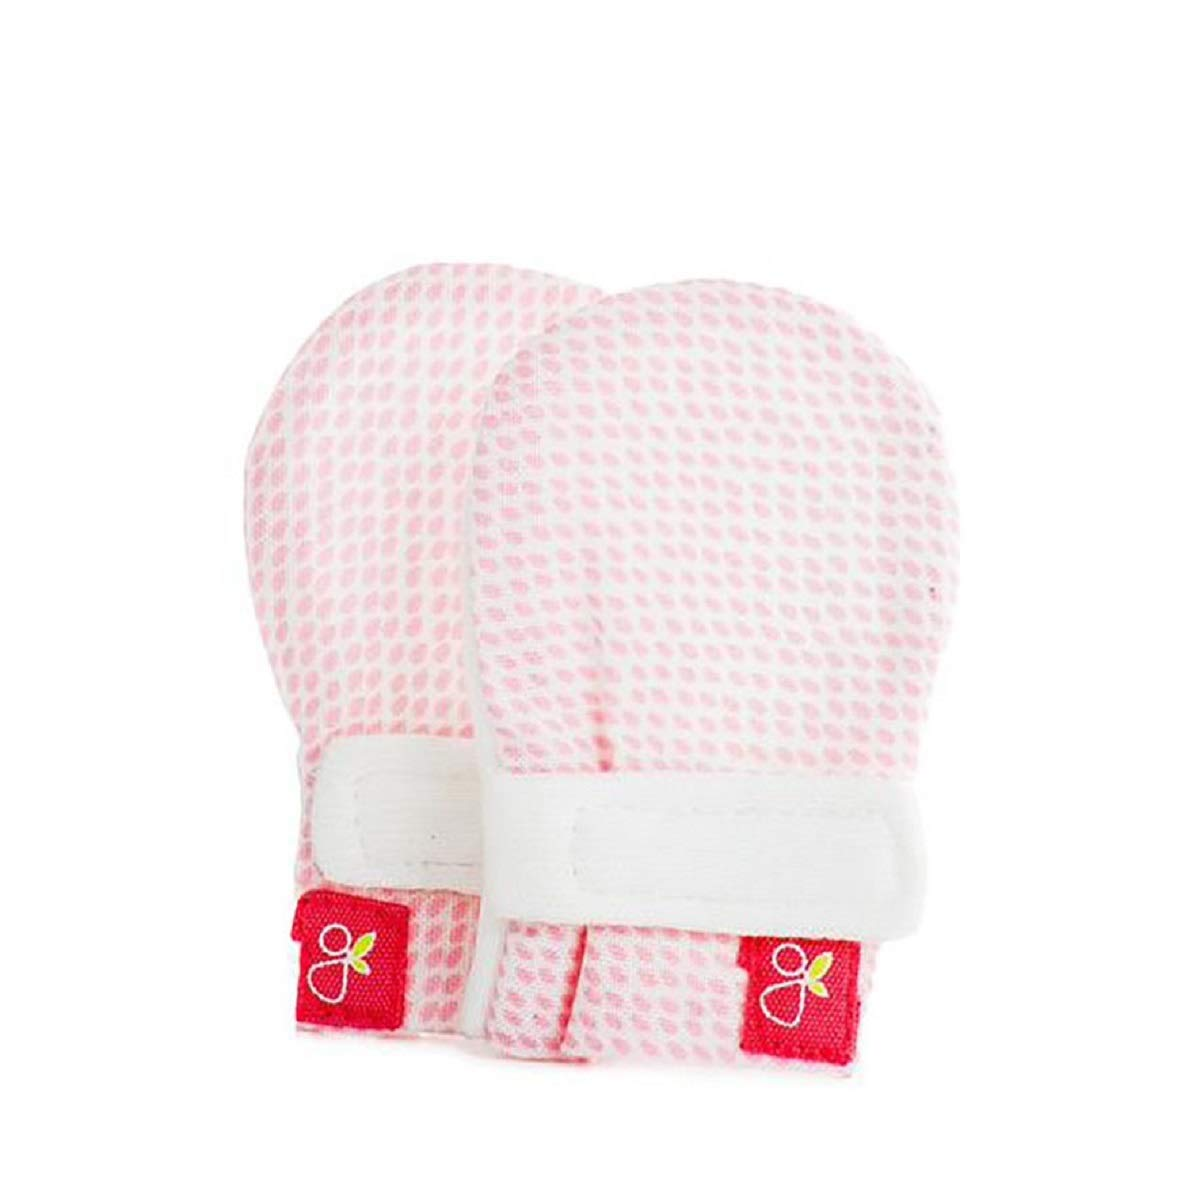 Goumi Kids Baby-Girls Goumimitts Soft Stay On Scratch Mittens - Stops Scratches and Germs 0-3 Months Drops Pink GK1005